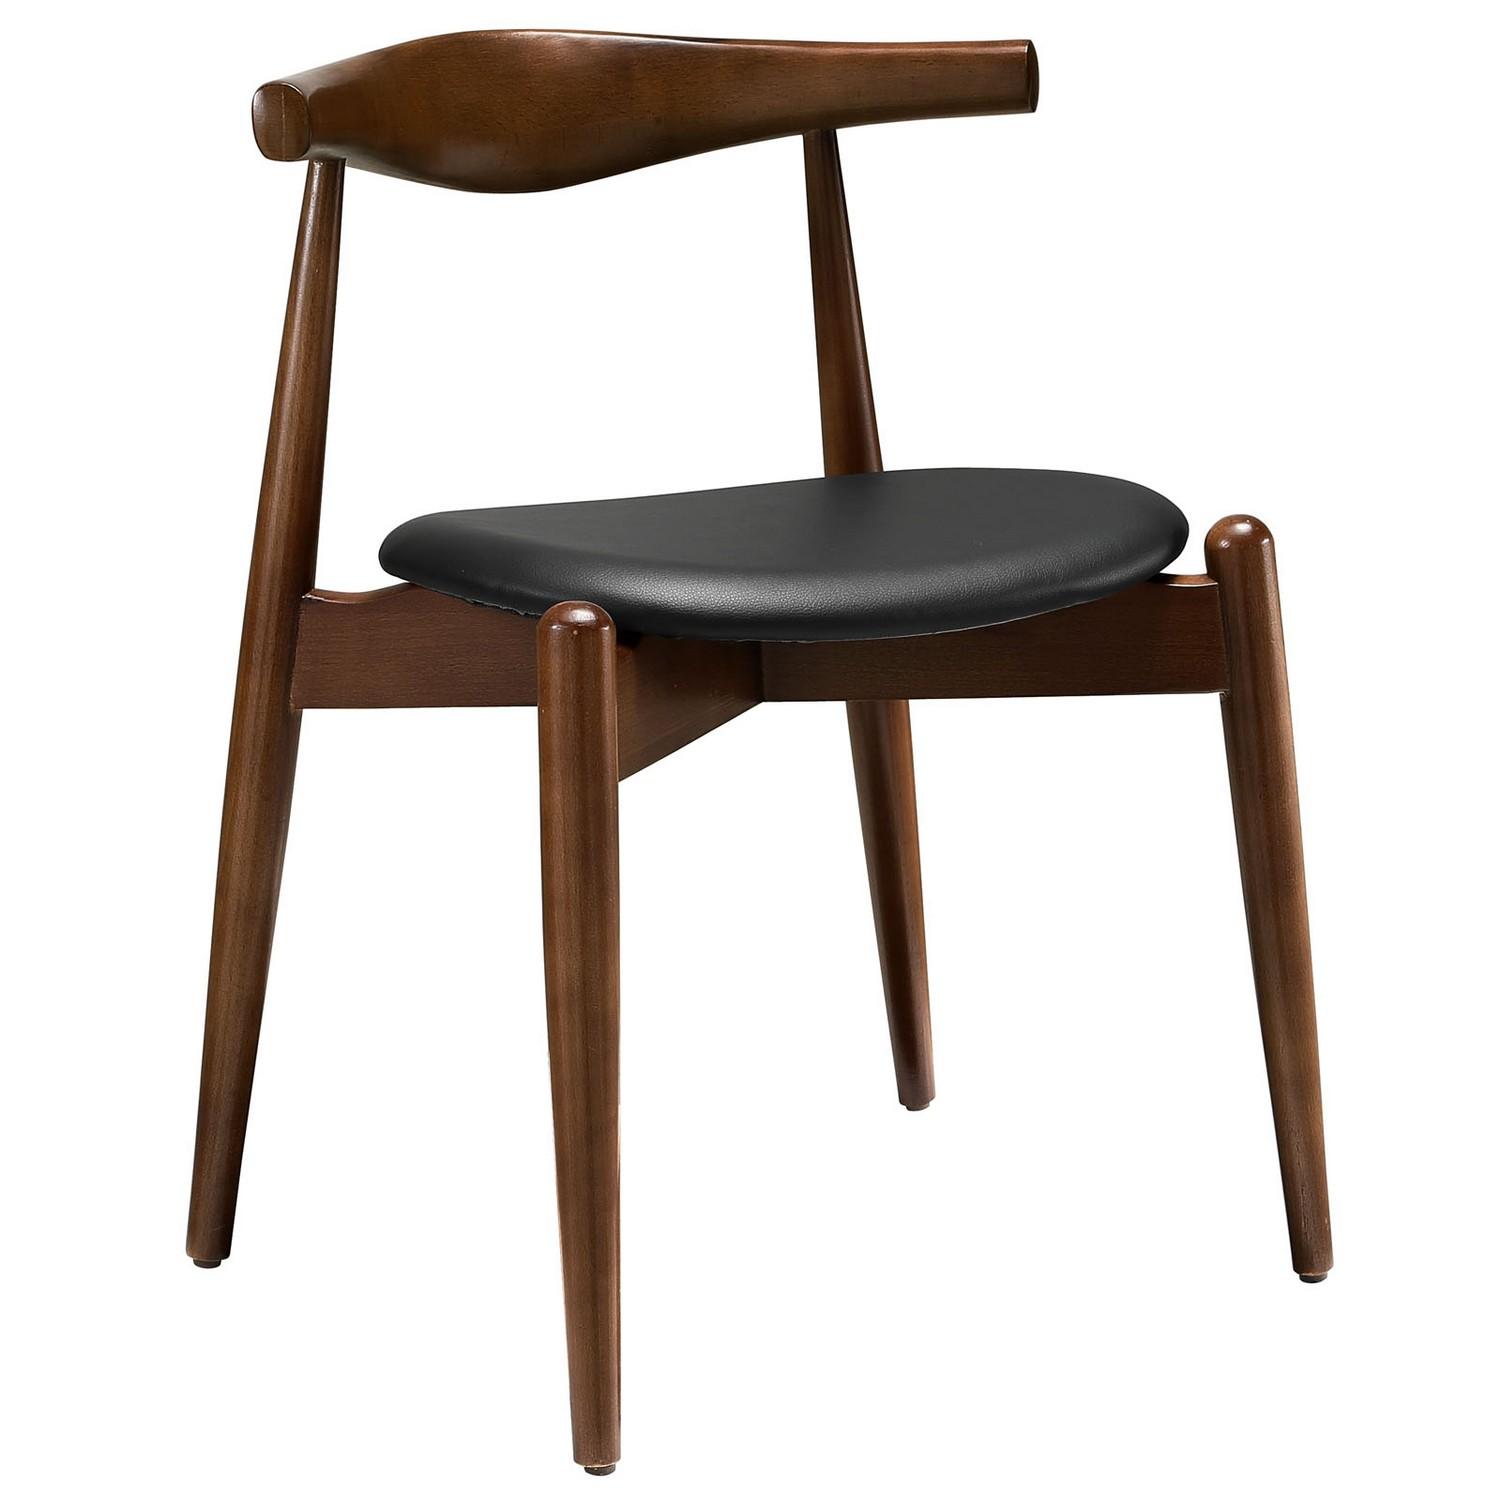 Modway Stalwart Dining Side Chair - Dark Walnut/Black